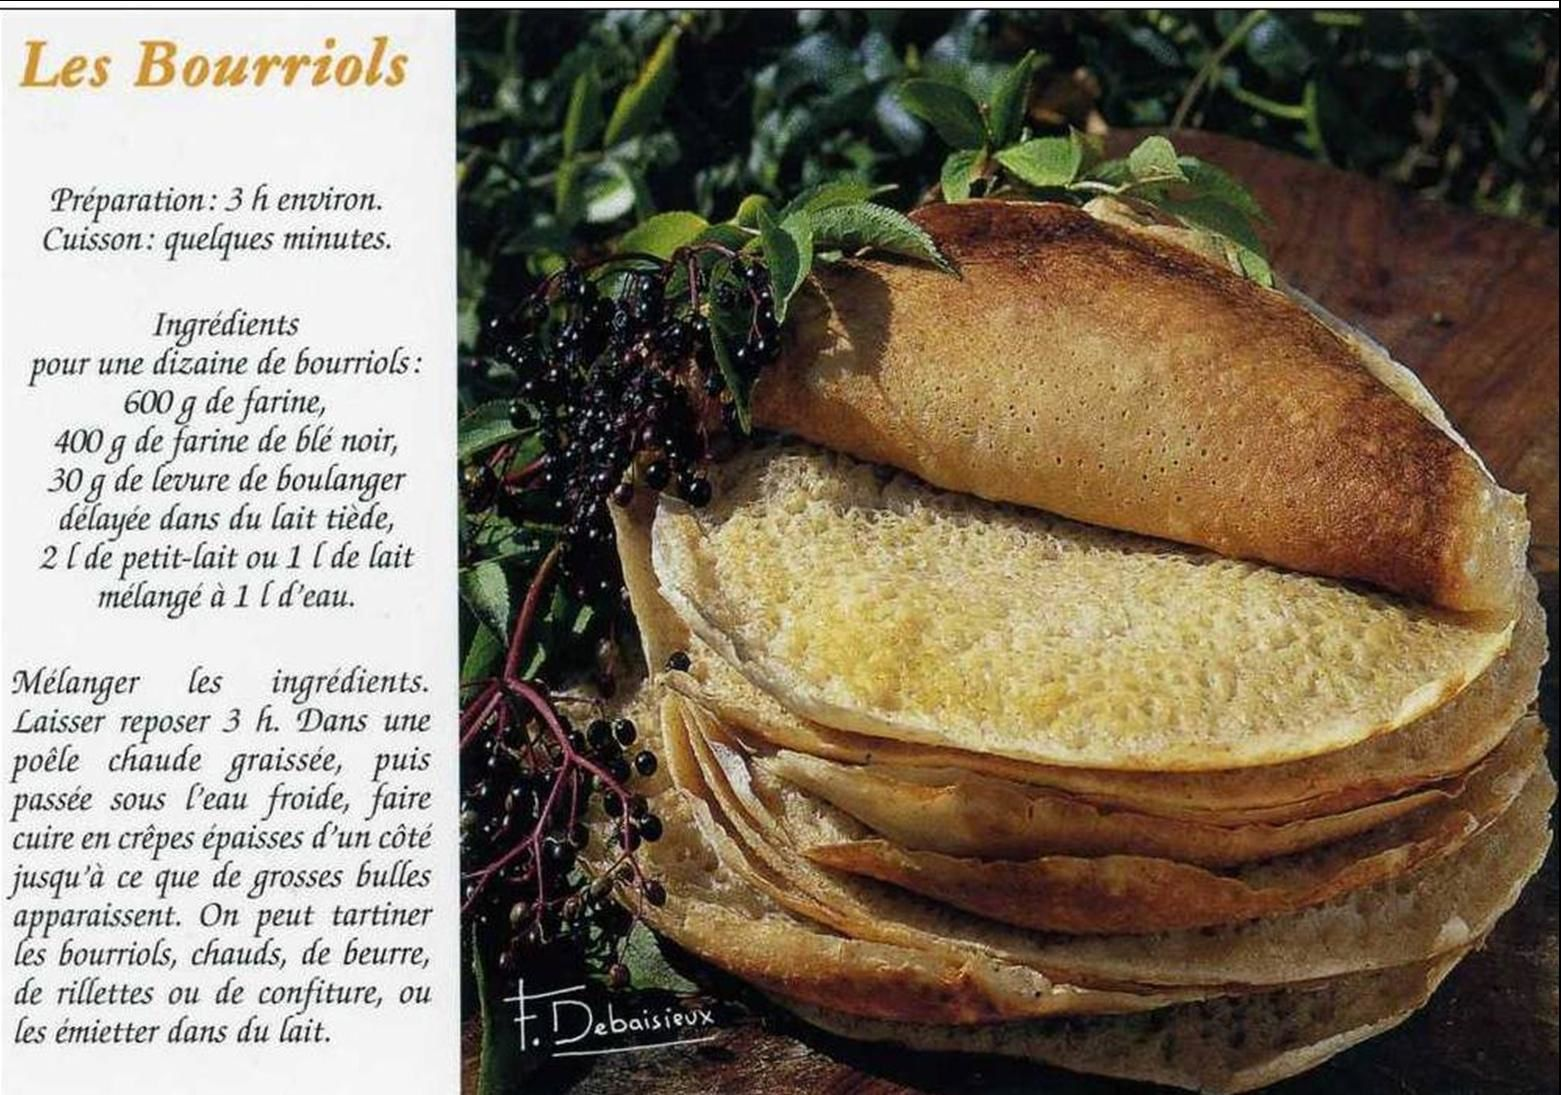 La cuisine traditionnelle auvergnate:Le Bourriol